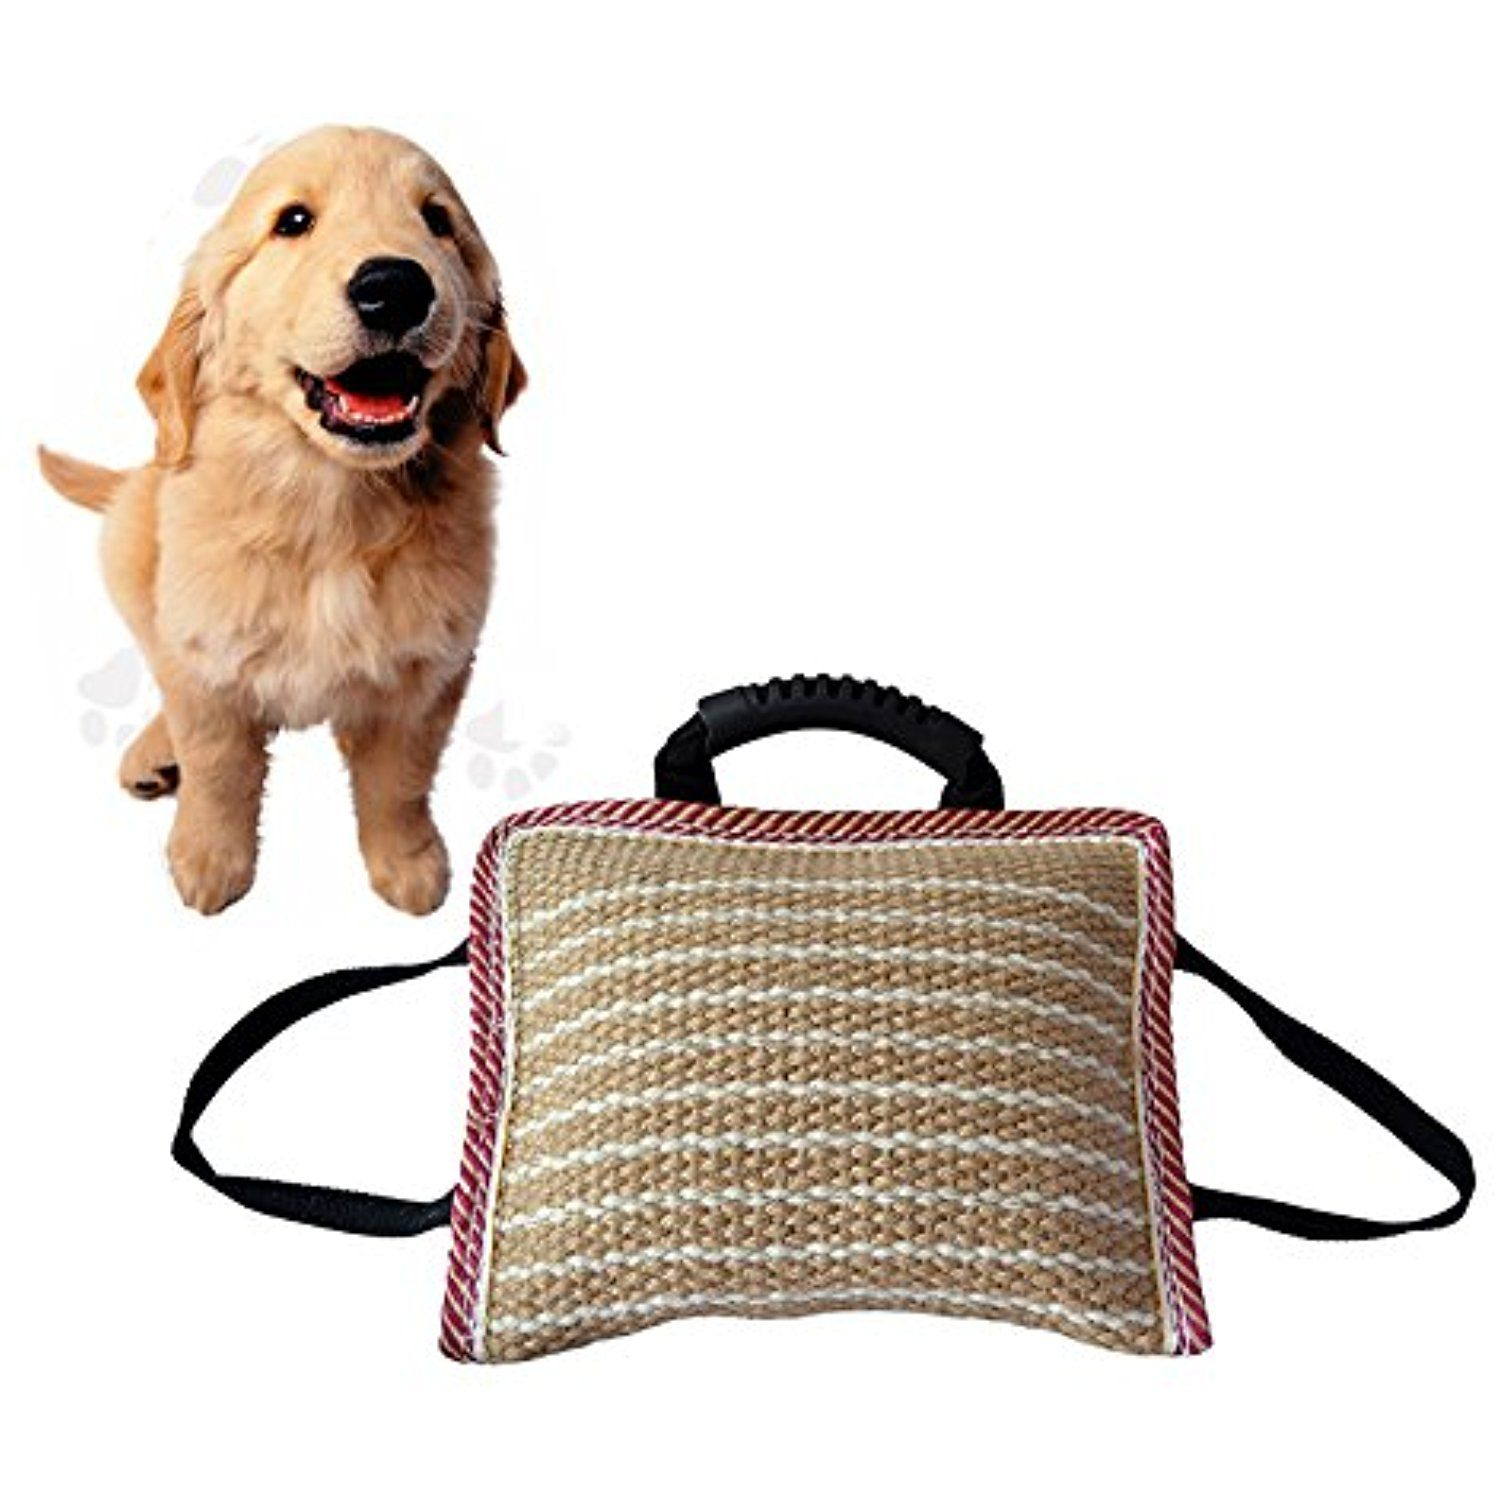 Pet Supplies Imported Hemp Training Bite Pillow To View